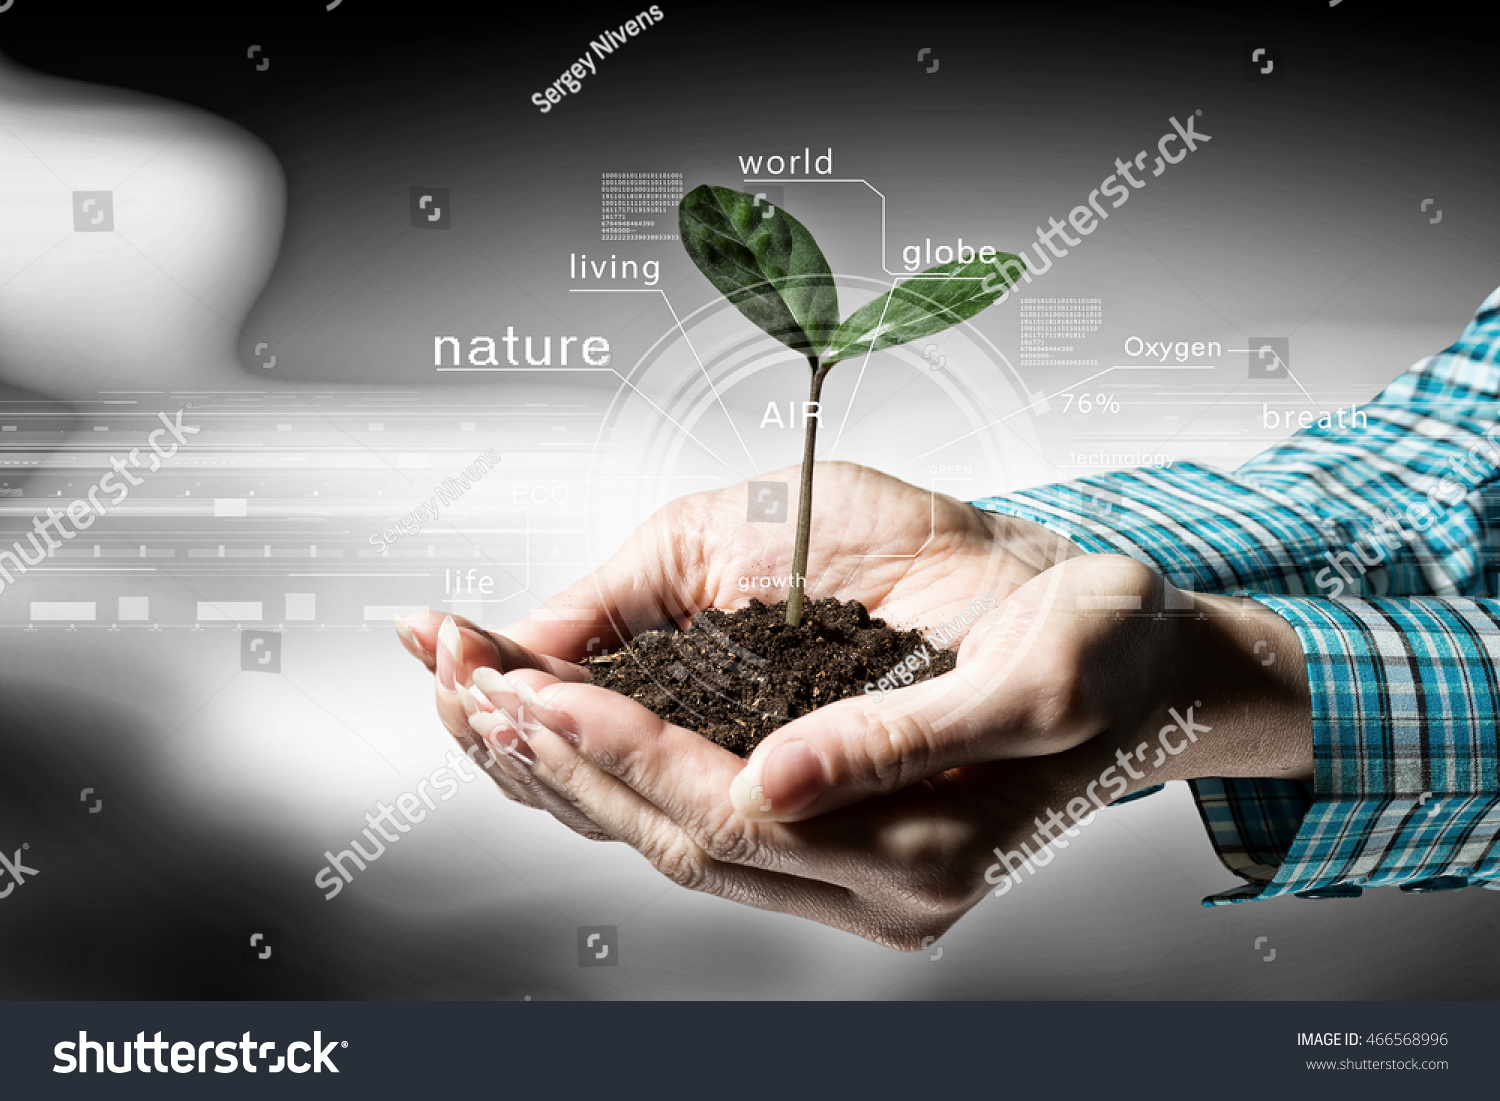 natural environment and technology Technology serves as an efficient function to our lives yet can become detrimental to our health which is demonstrated through ronald wright's theory of the progress trap and theories of environmental degradation (cameron, par 5.